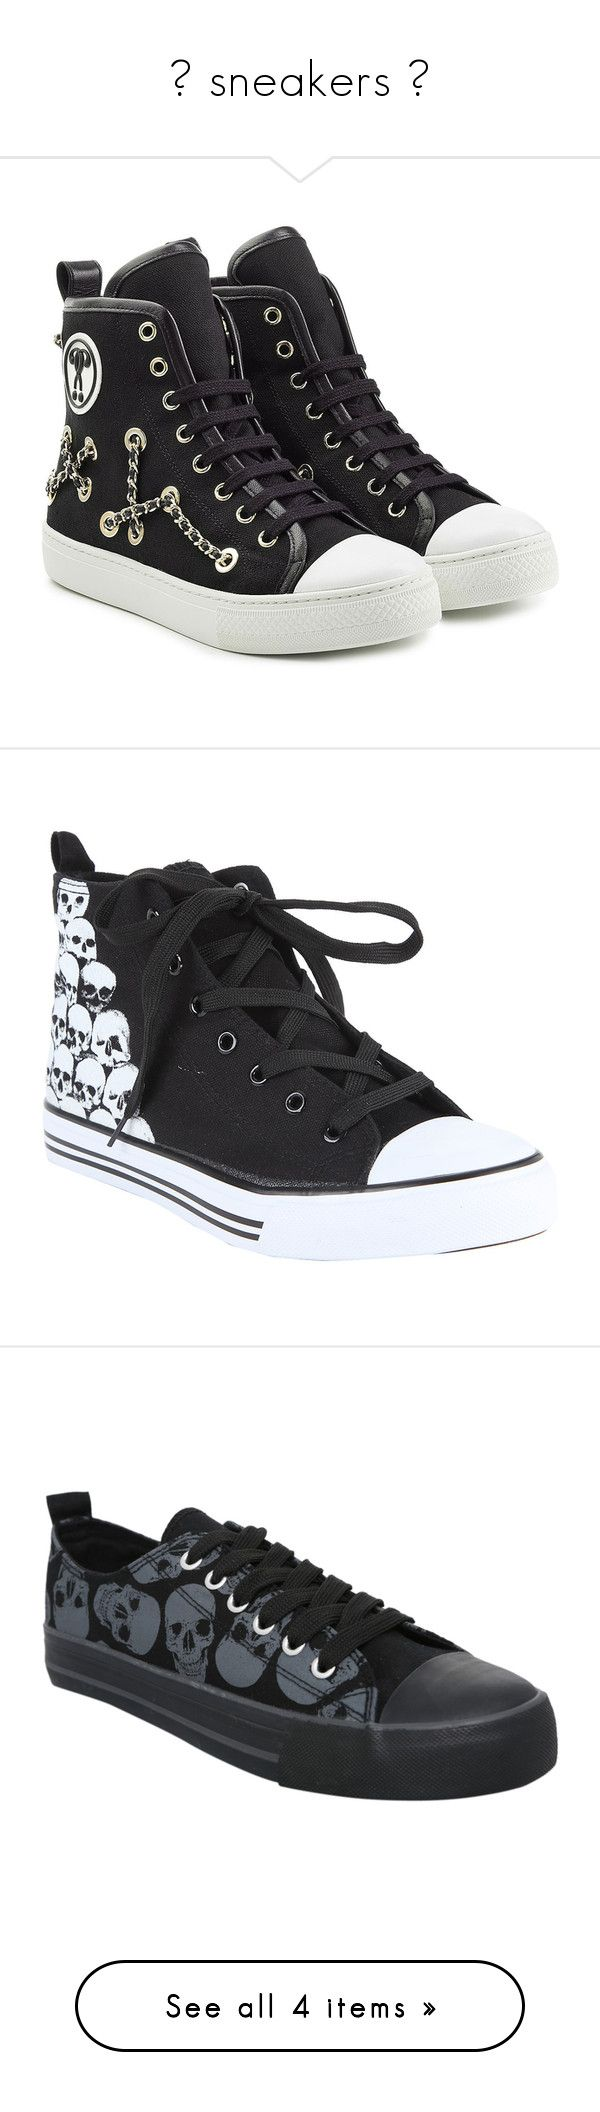 """""""🖤 sneakers 🖤"""" by emo-narwhalz ❤ liked on Polyvore featuring shoes, sneakers, black, black lace up shoes, moschino sneakers, embellished sneakers, black leather high tops, black high-top sneakers, men's fashion and men's shoes"""